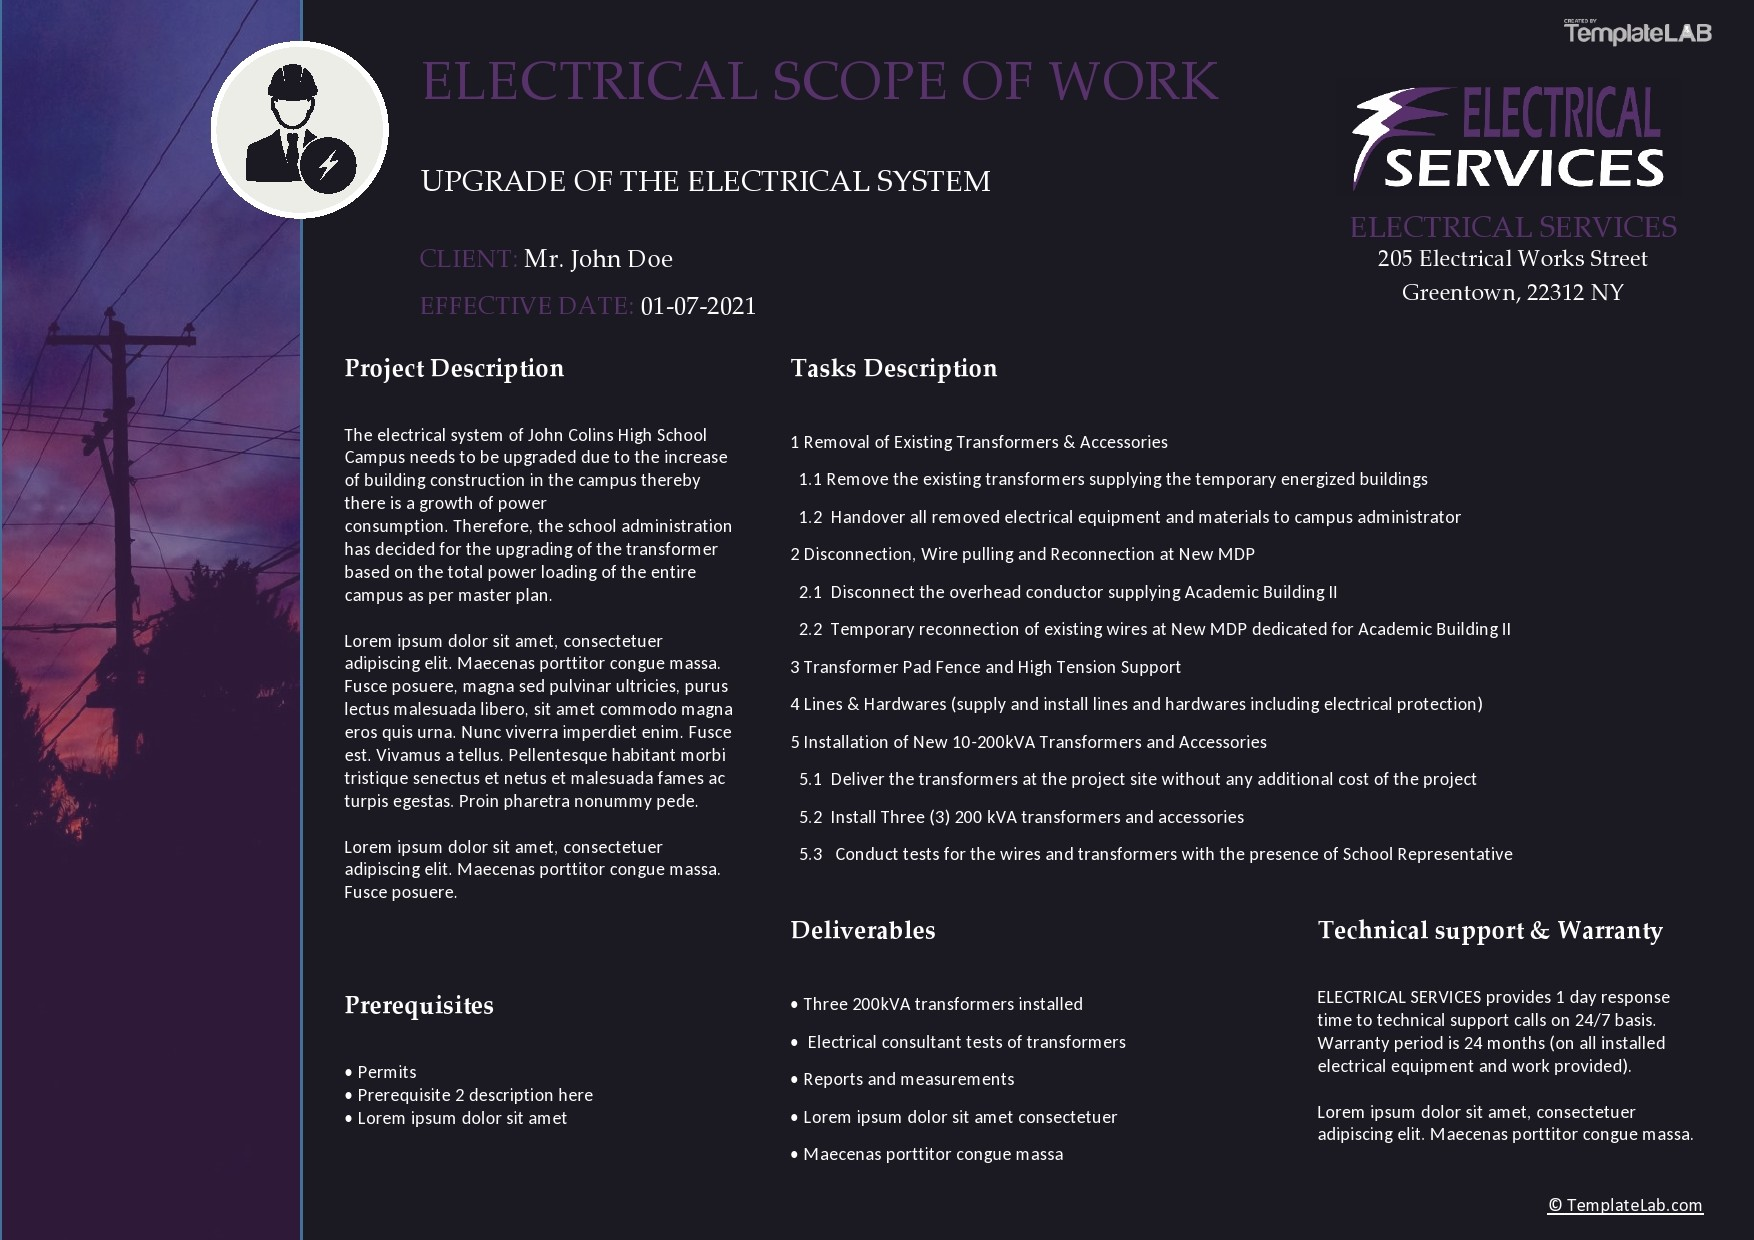 Free Electrical Scope of Work Template - TemplateLab.com